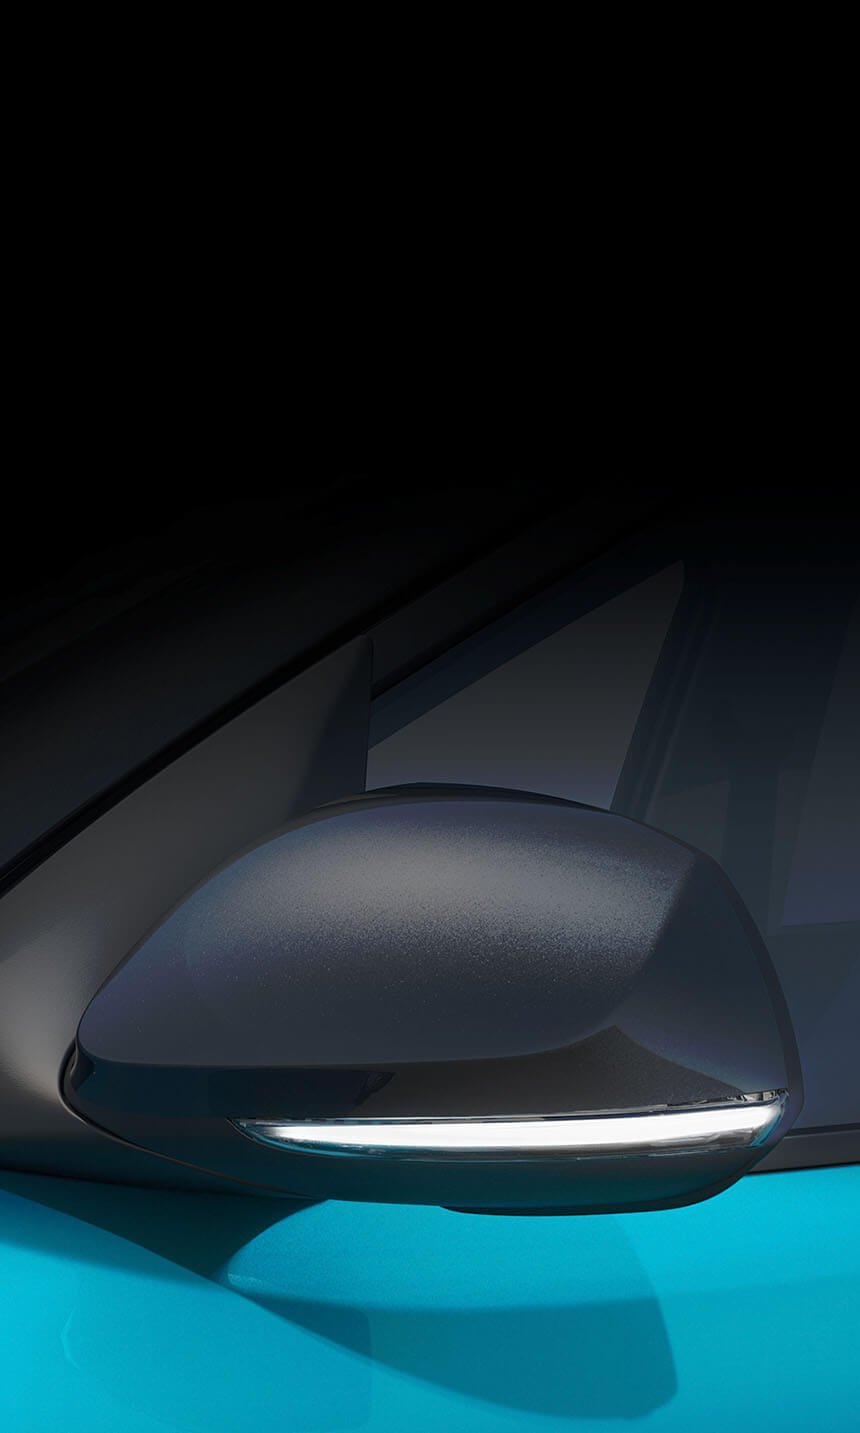 <div class='i10-2019-exterior-sliderBadge'>Side</div>Exterior mirror LED turn indicators.